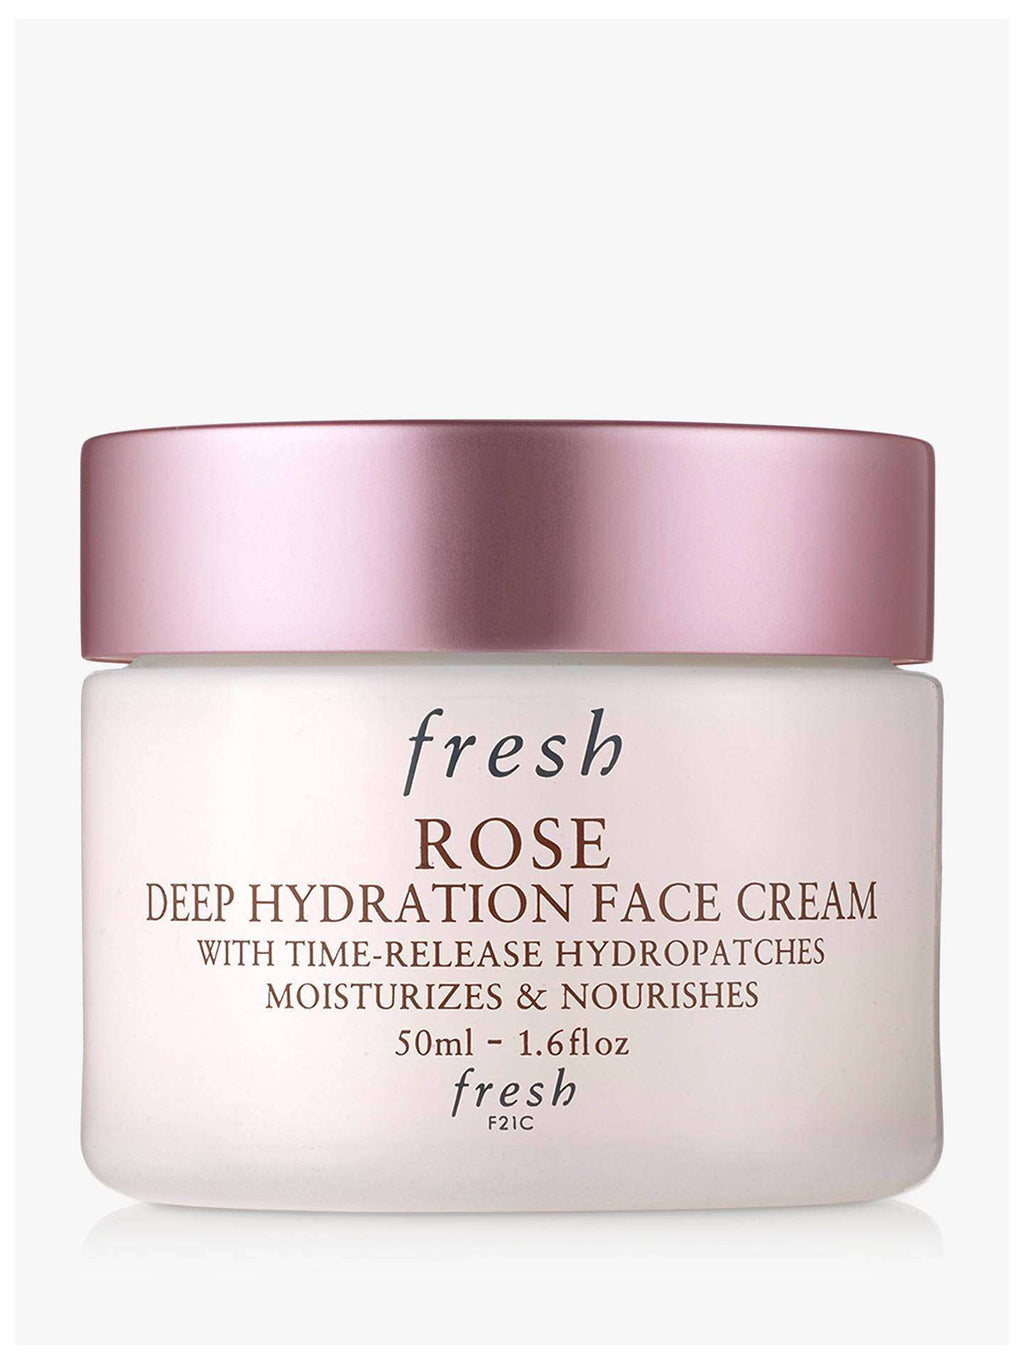 FRESH - ROSE DEEP HYDRATION FACE CREAM 50ml